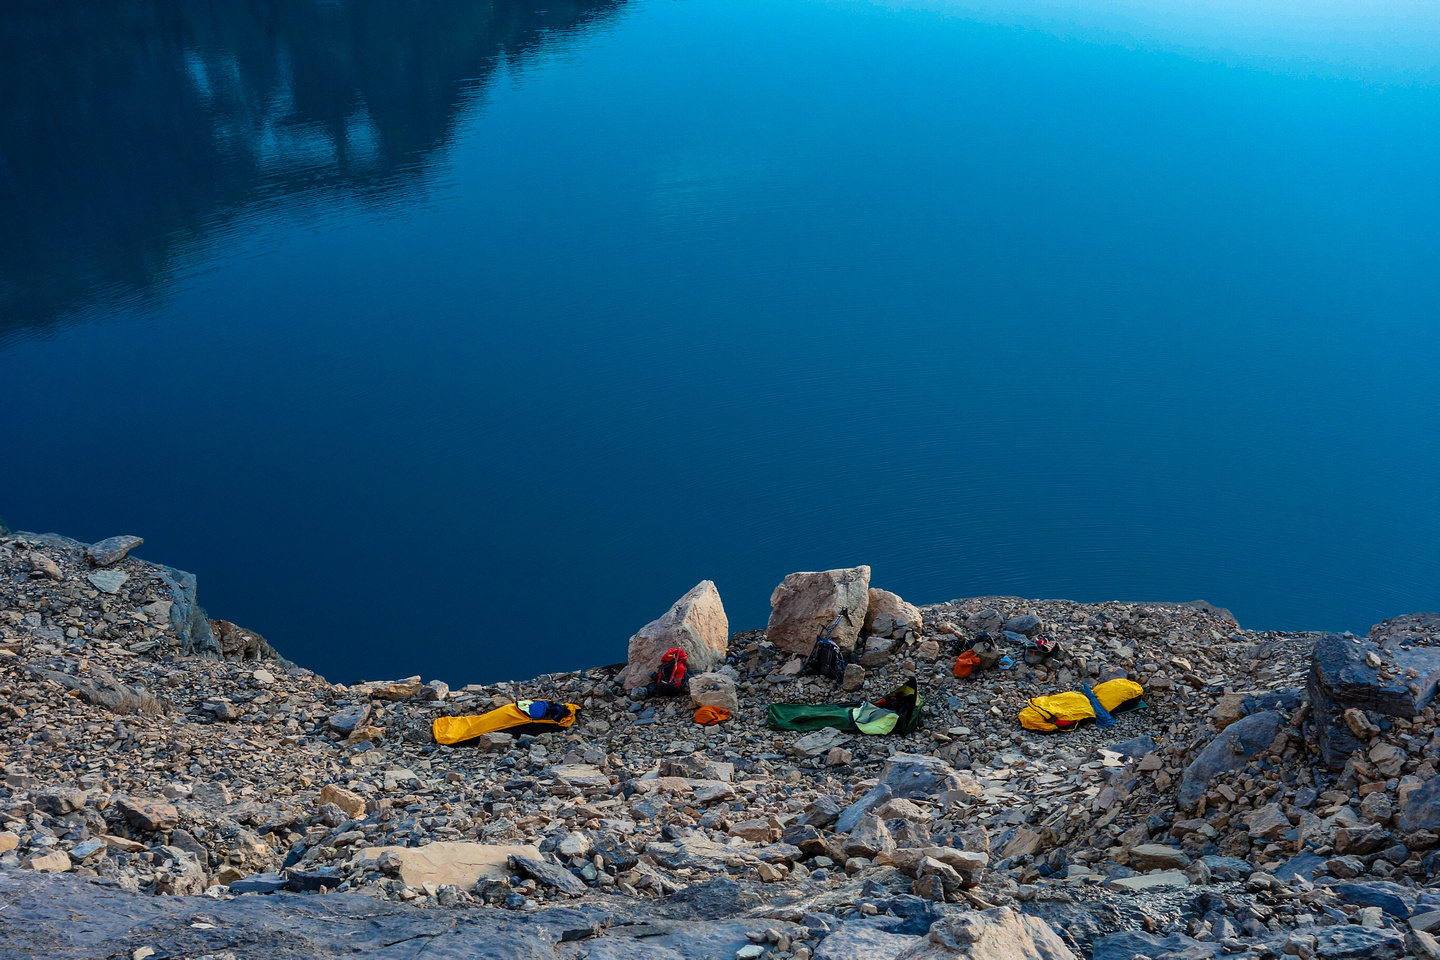 Looking at our bivy from above. I put rocks around mine (left) because of the 40 foot drop to the lake right by it!